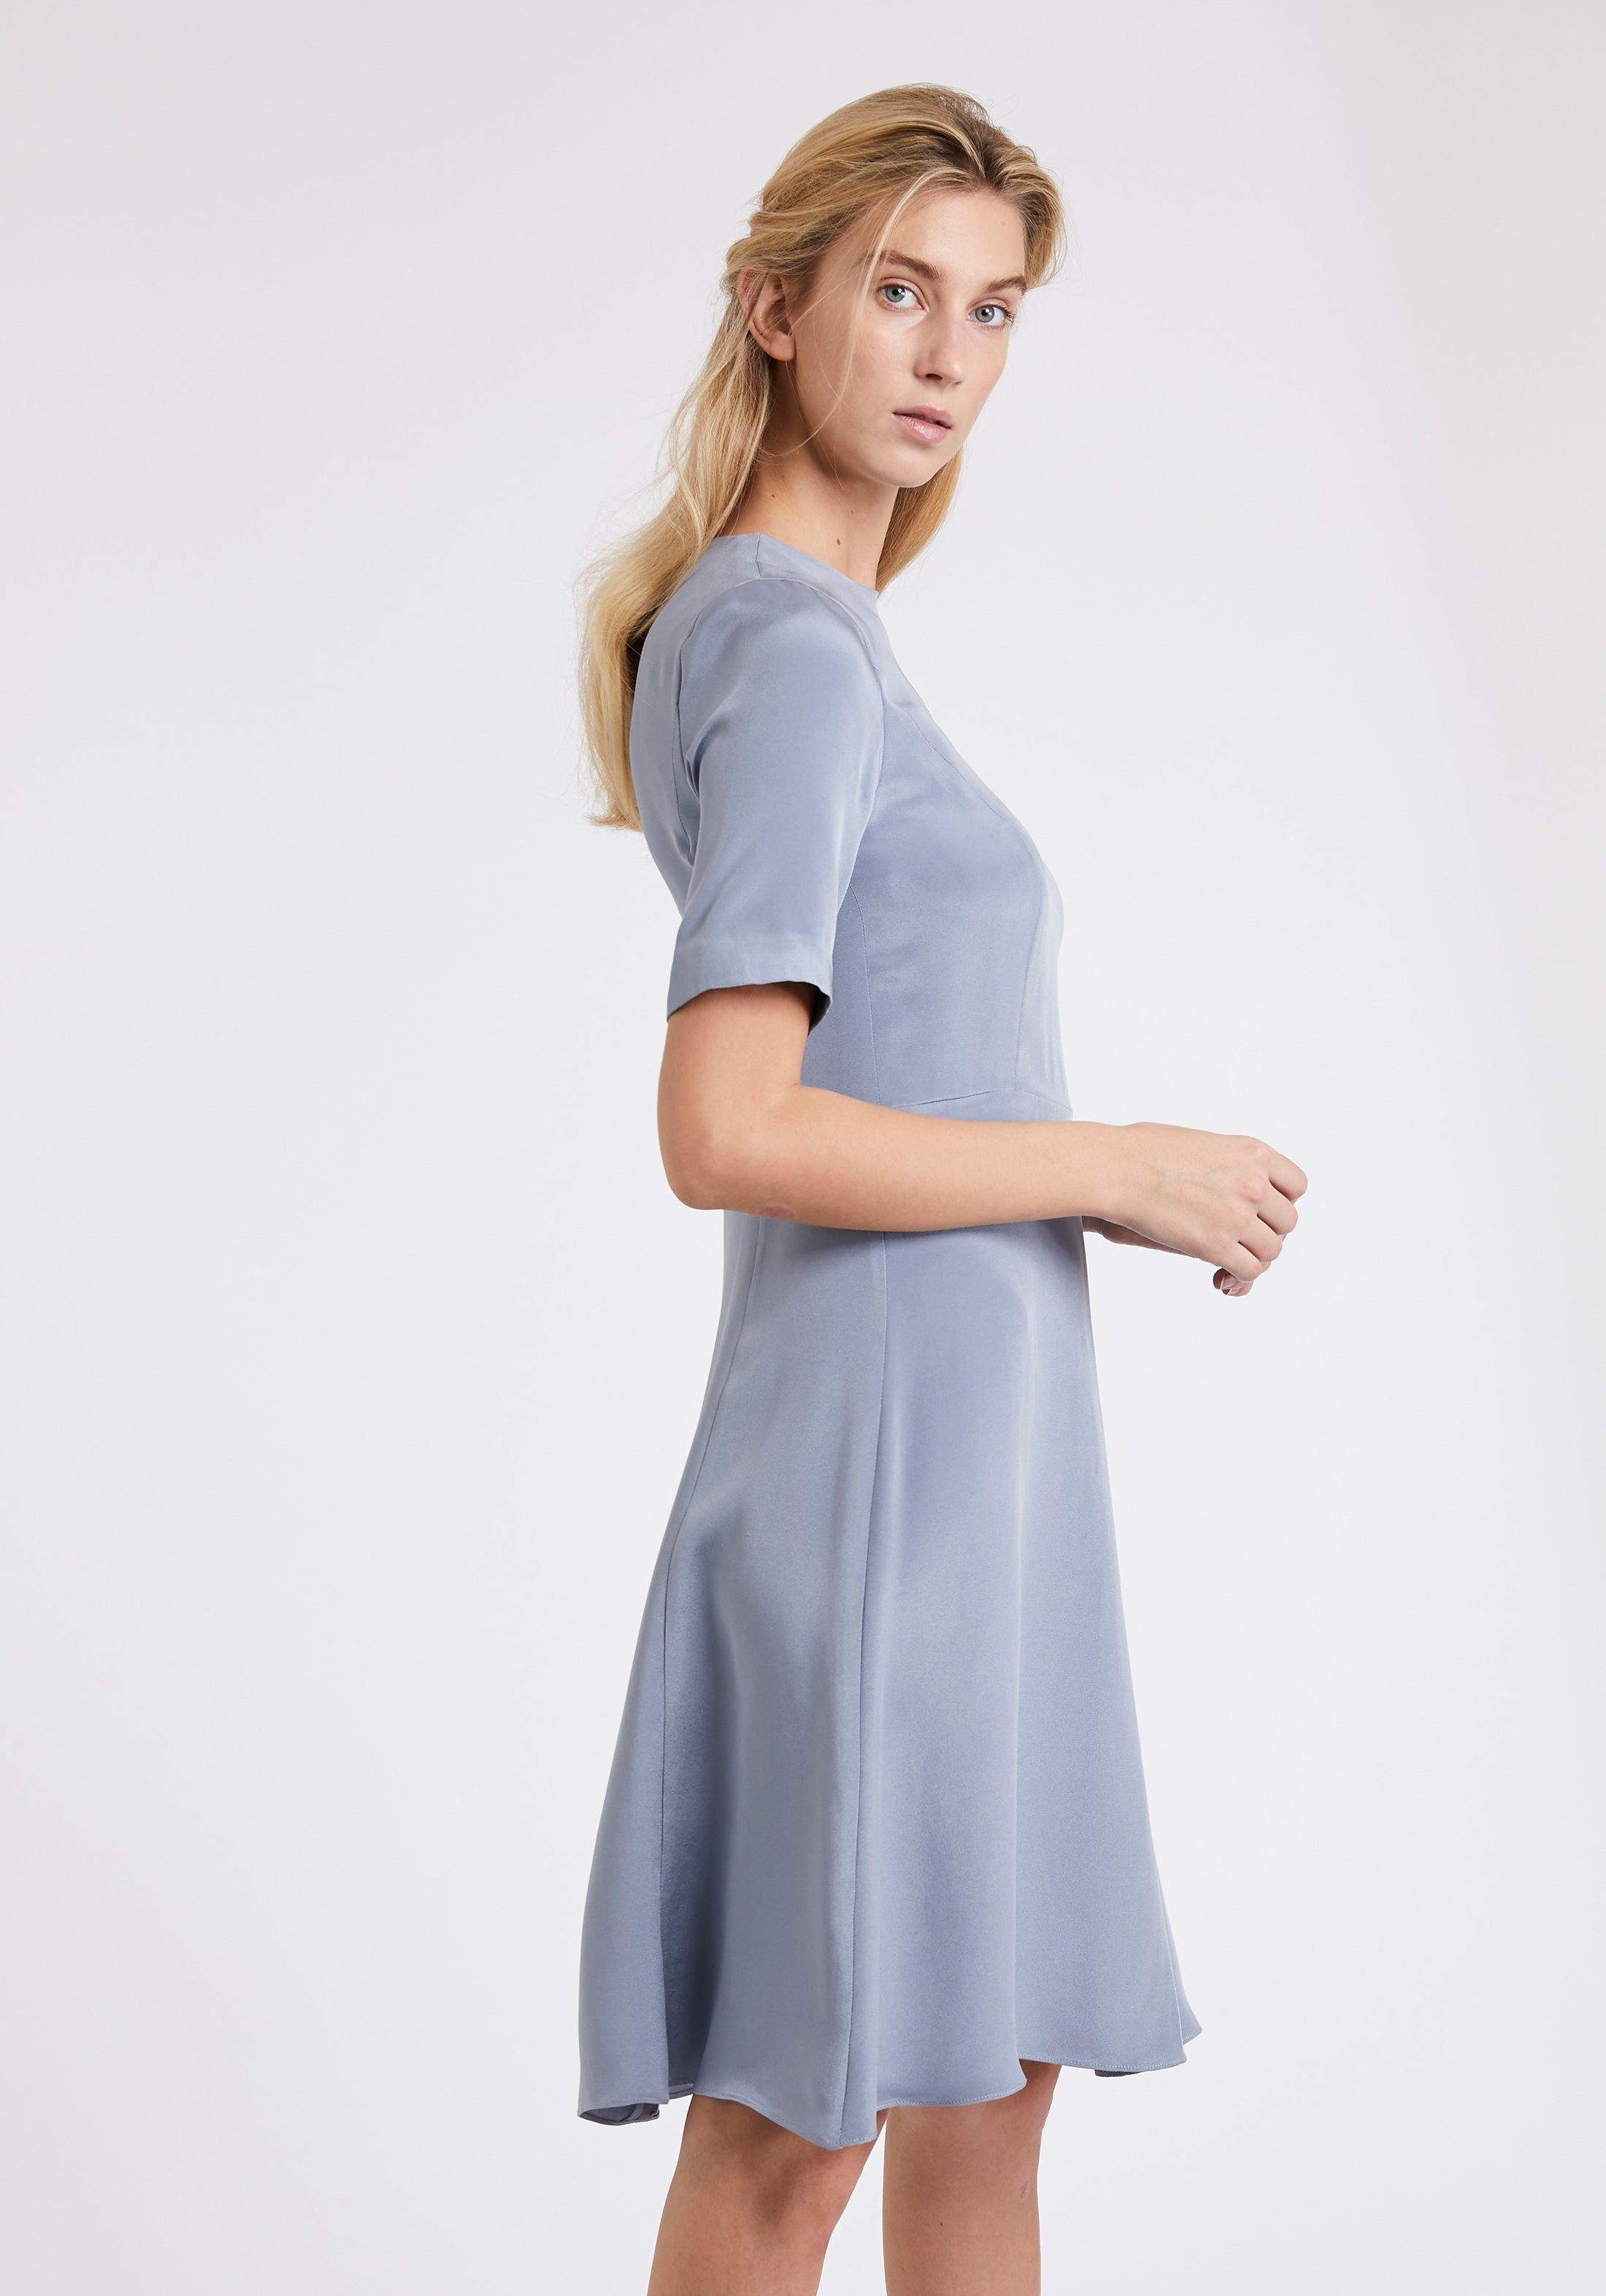 Stafford Dress in Pewter Silk